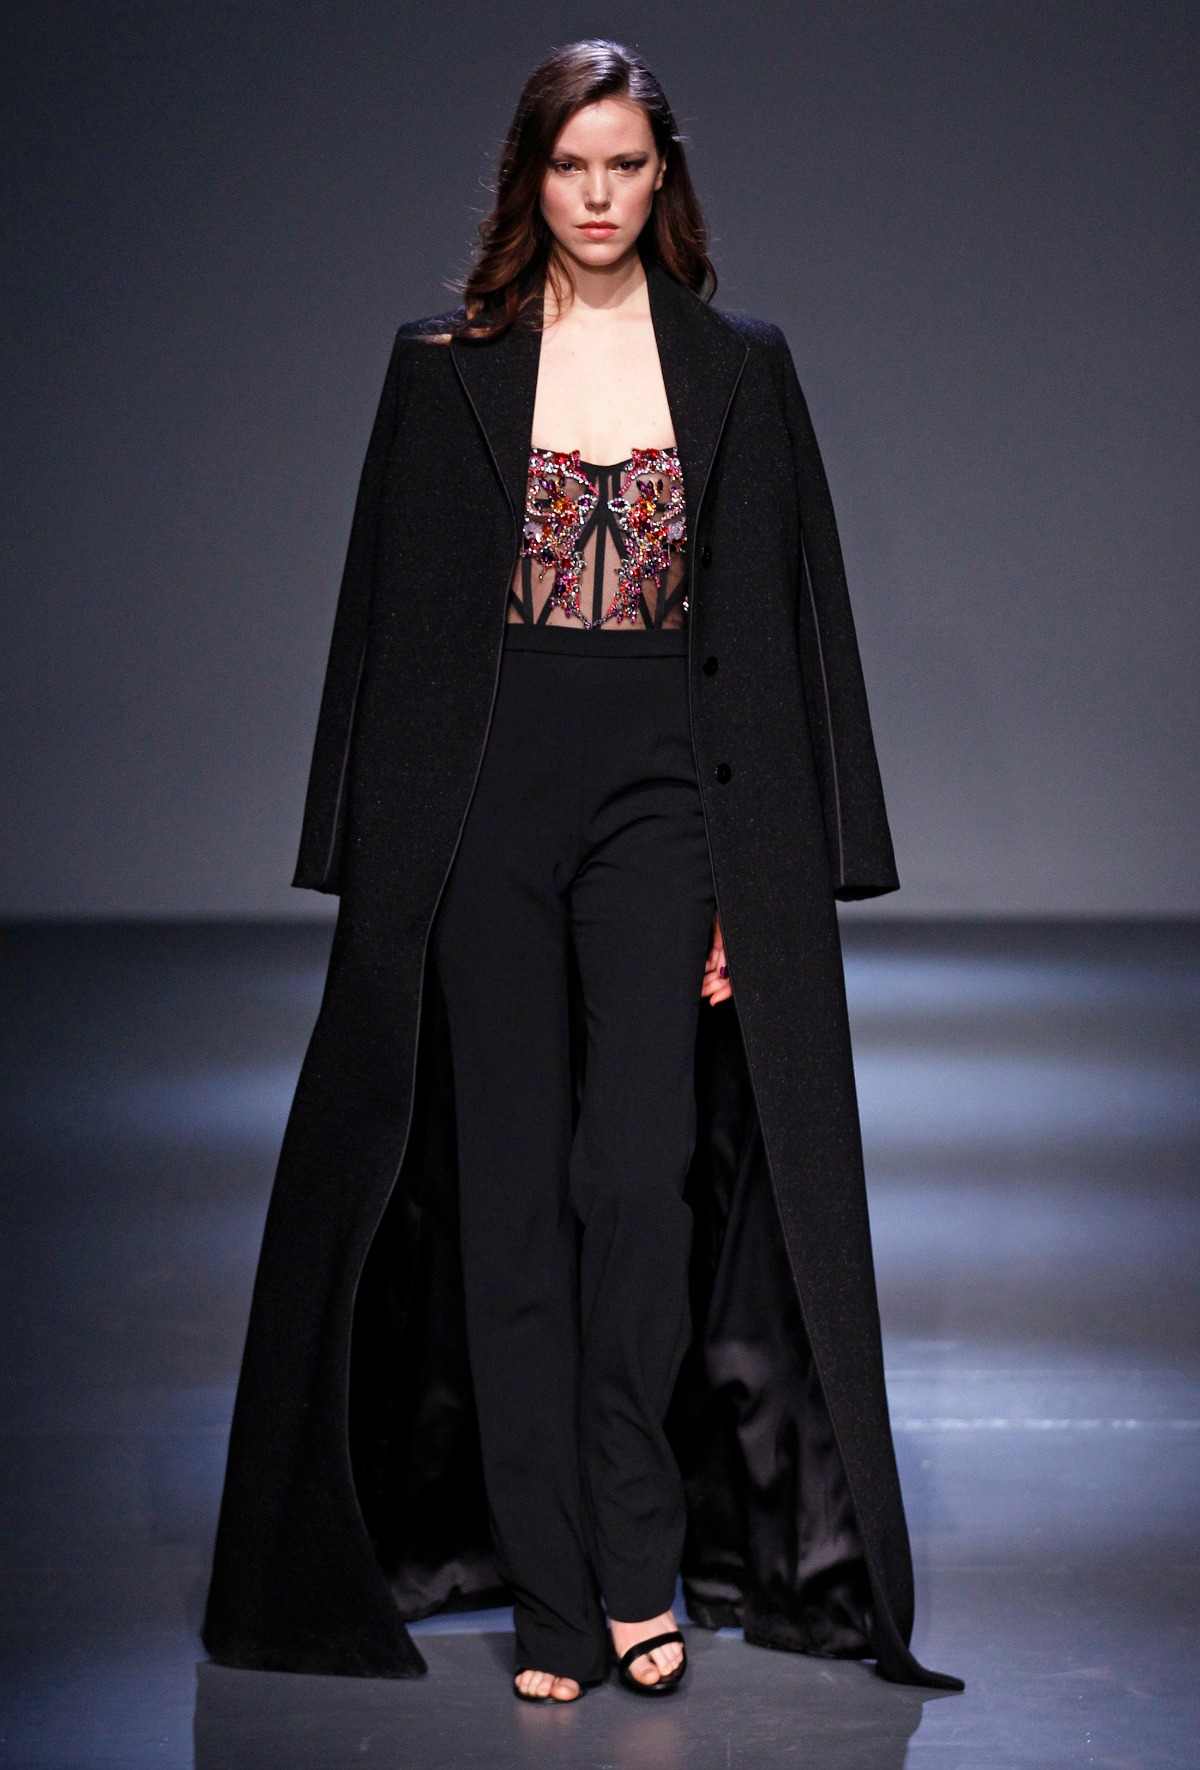 Pamella Roland Fall 2018 Runway I Black Jumpsuit with Embroidered Corset Bodice #NYFW #FallFashion